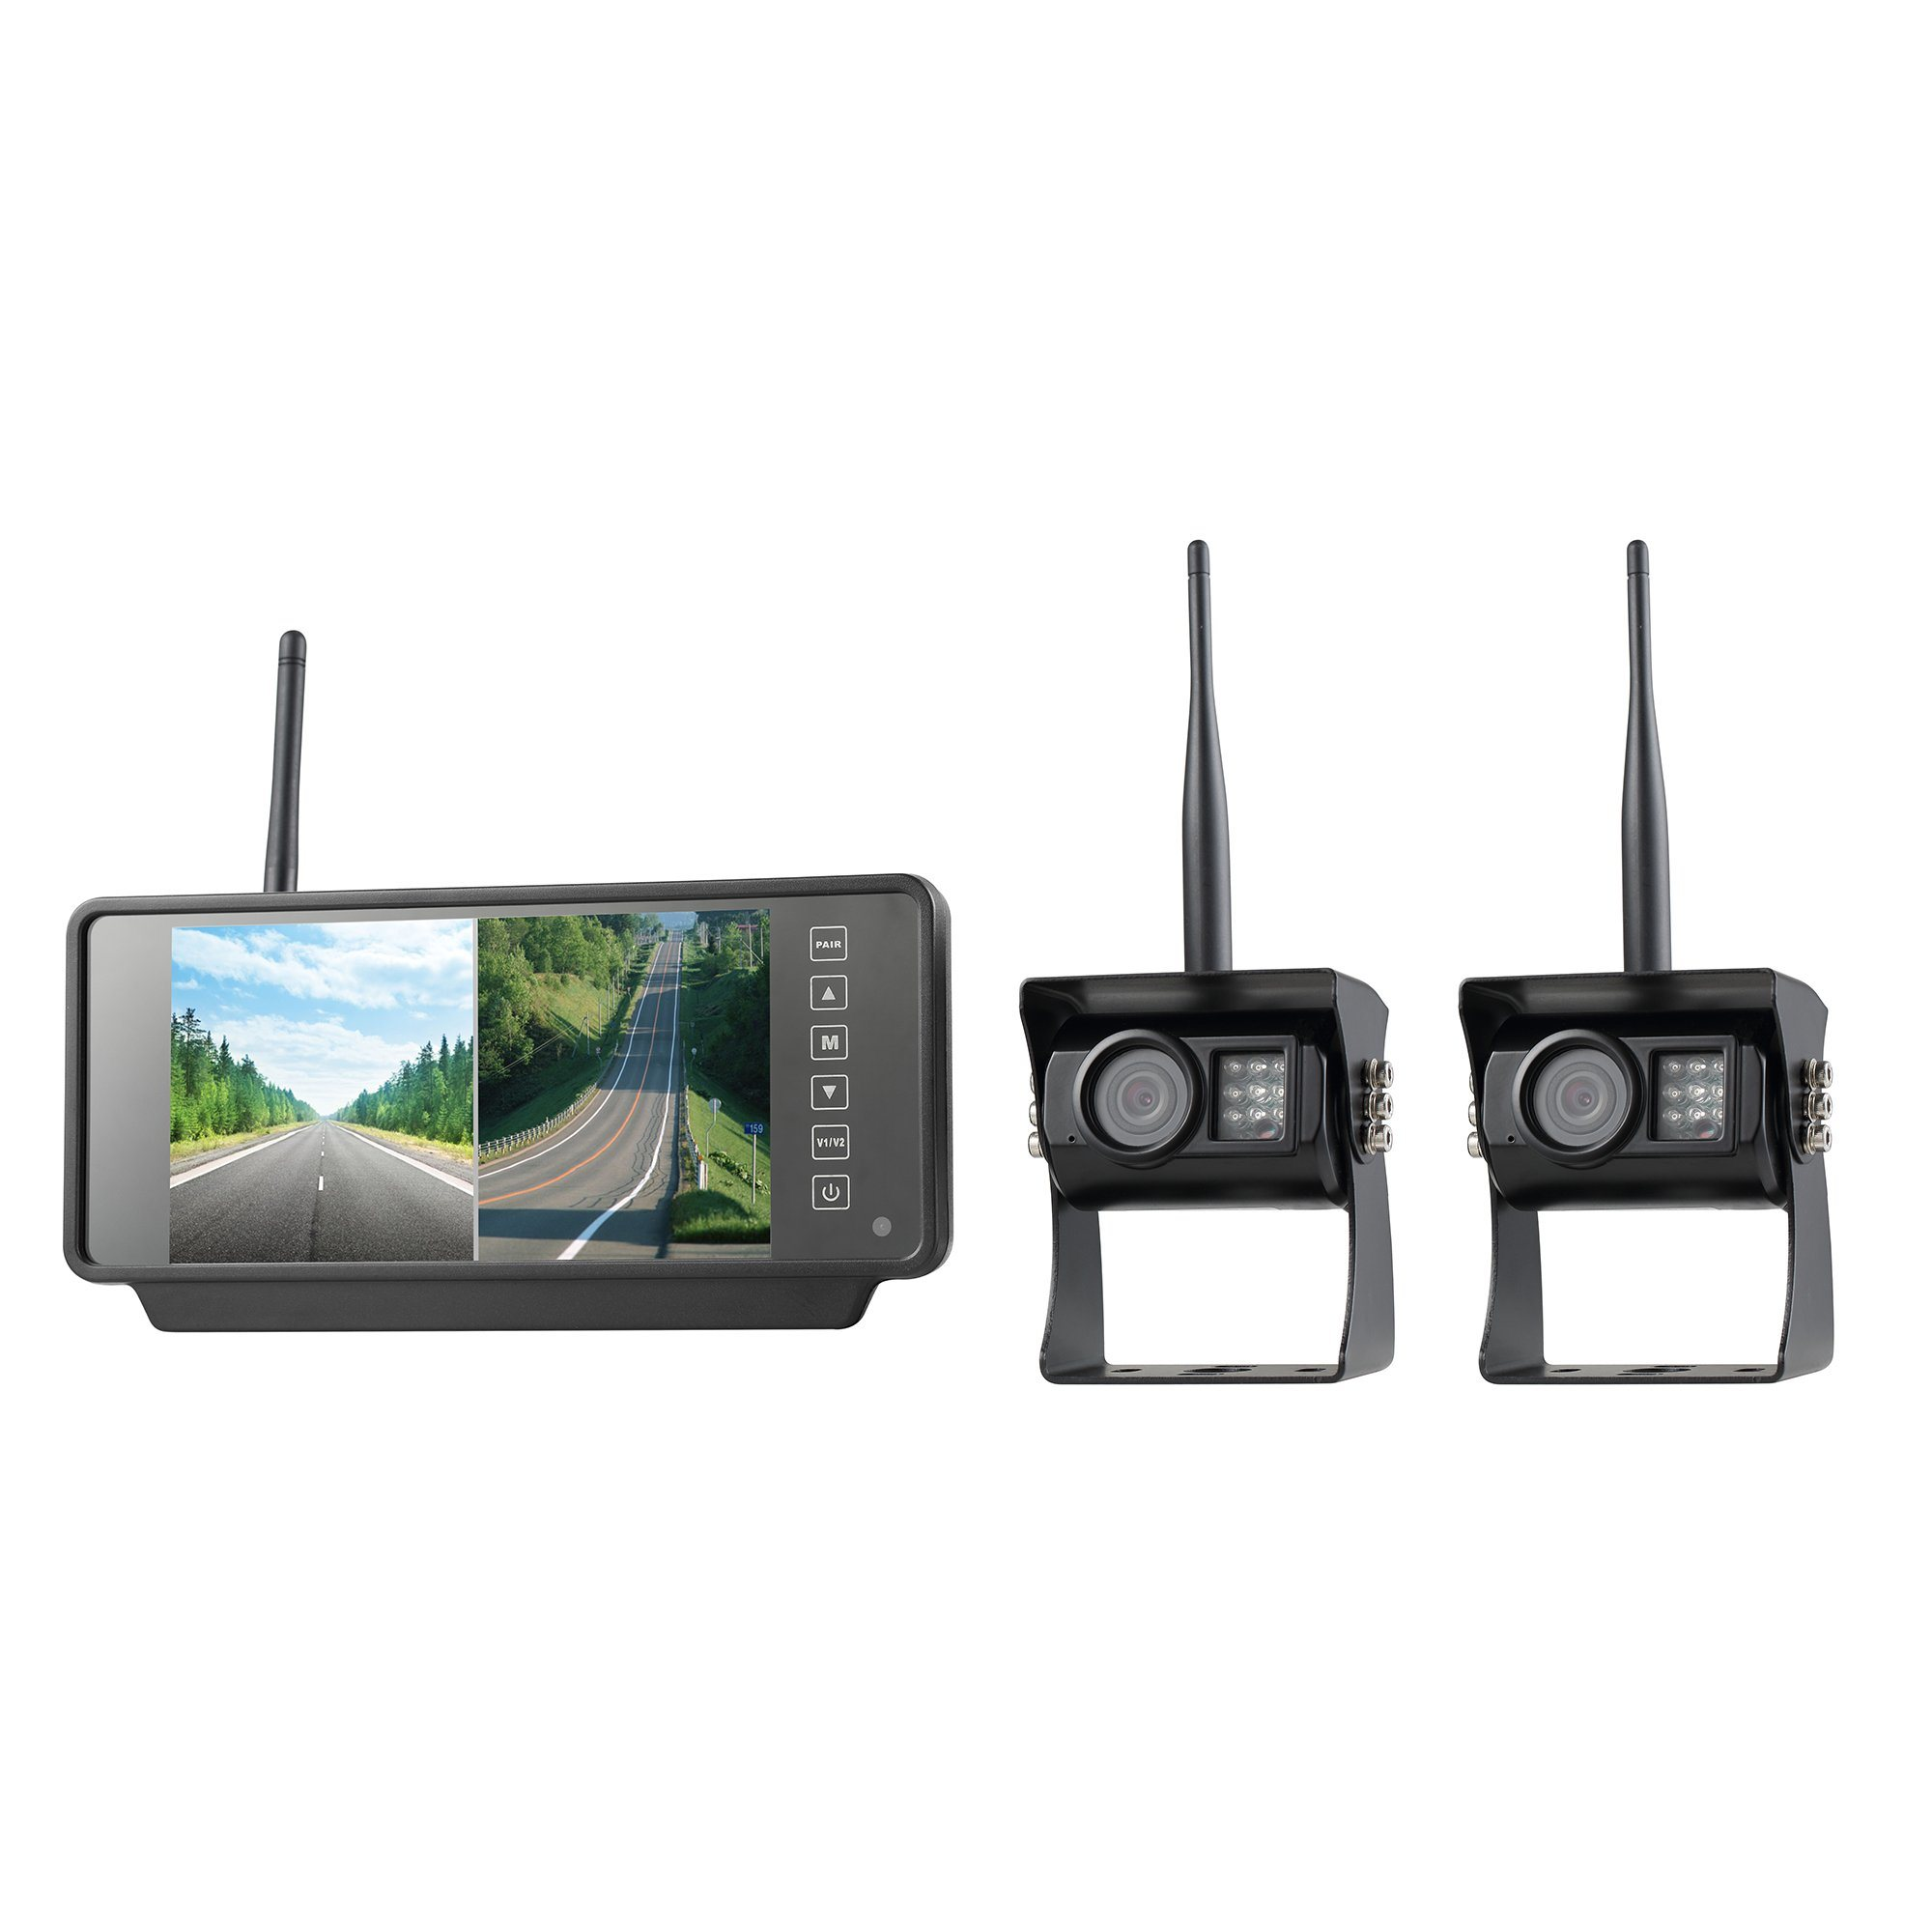 "7"" Two-Way Wireless System Truck Camera with Mirror Monitor, Ce and RoHS Directive-Compliant"